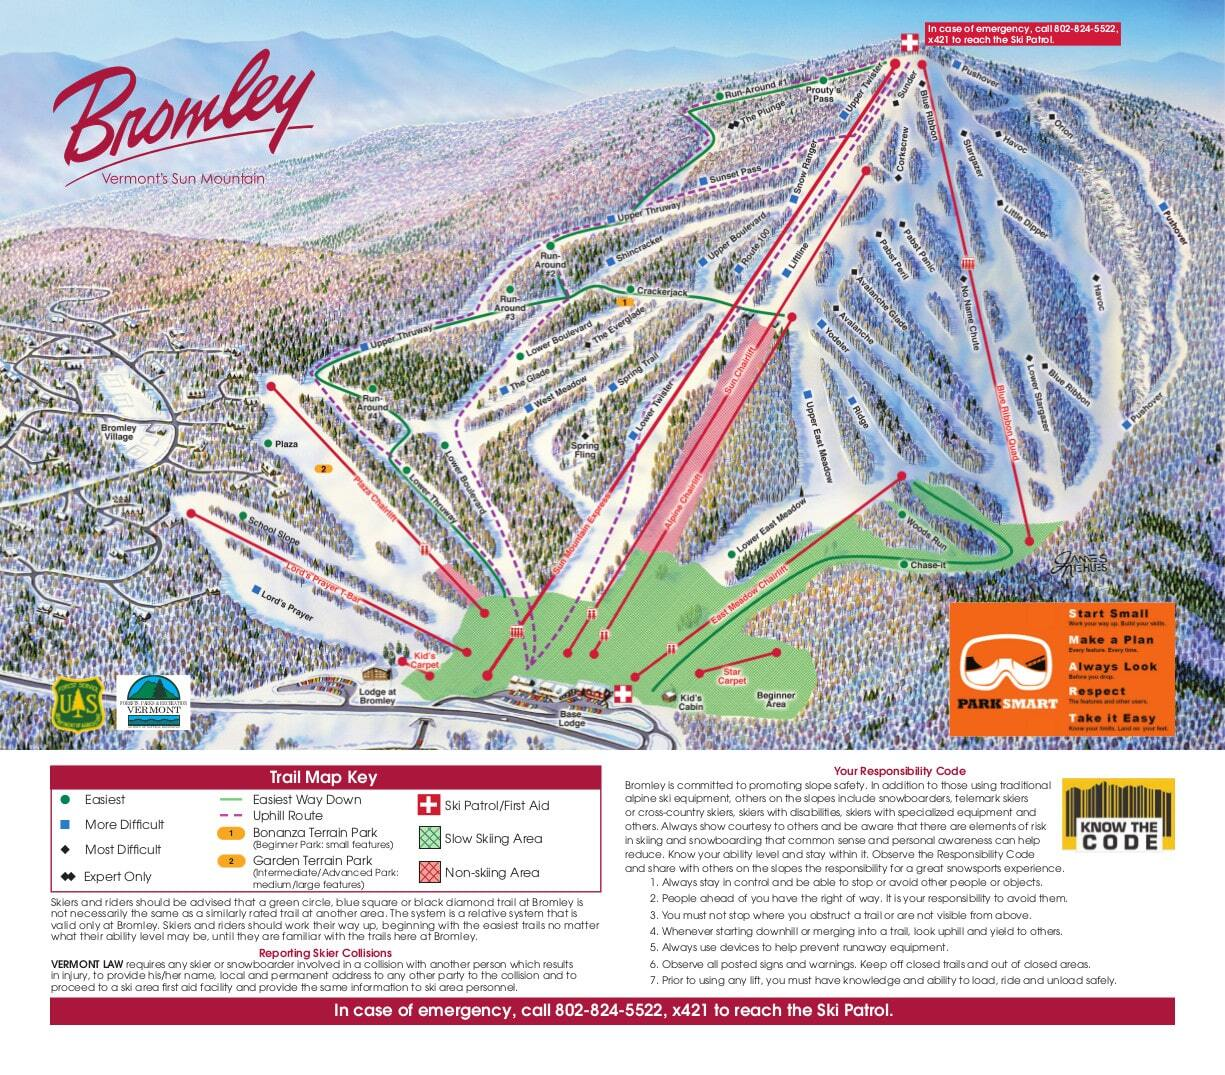 Bromley Mountain Ski Resort Guide Location Map Bromley